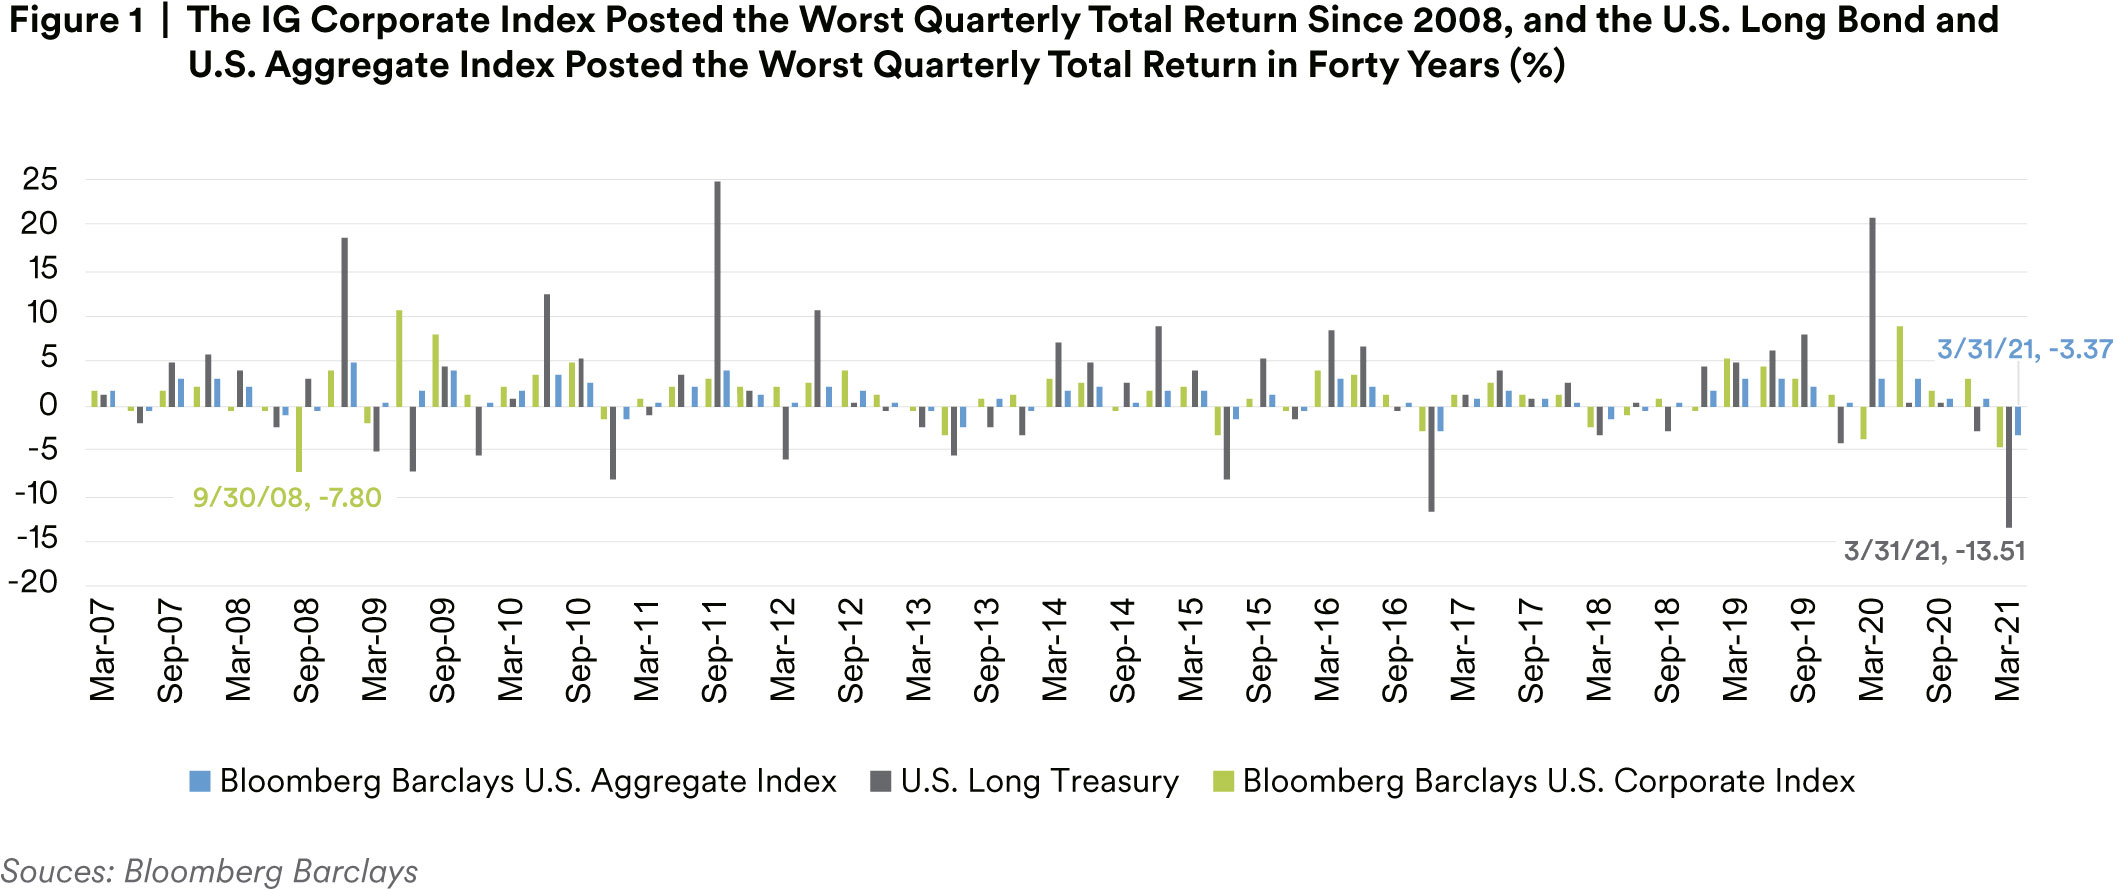 The IG Corporate Index Posted the Worst Quarterly Total Return Since 2008, and the U.S. Long Bond and  U.S. Aggregate Index Posted the Worst Quarterly Total Return in Forty Years